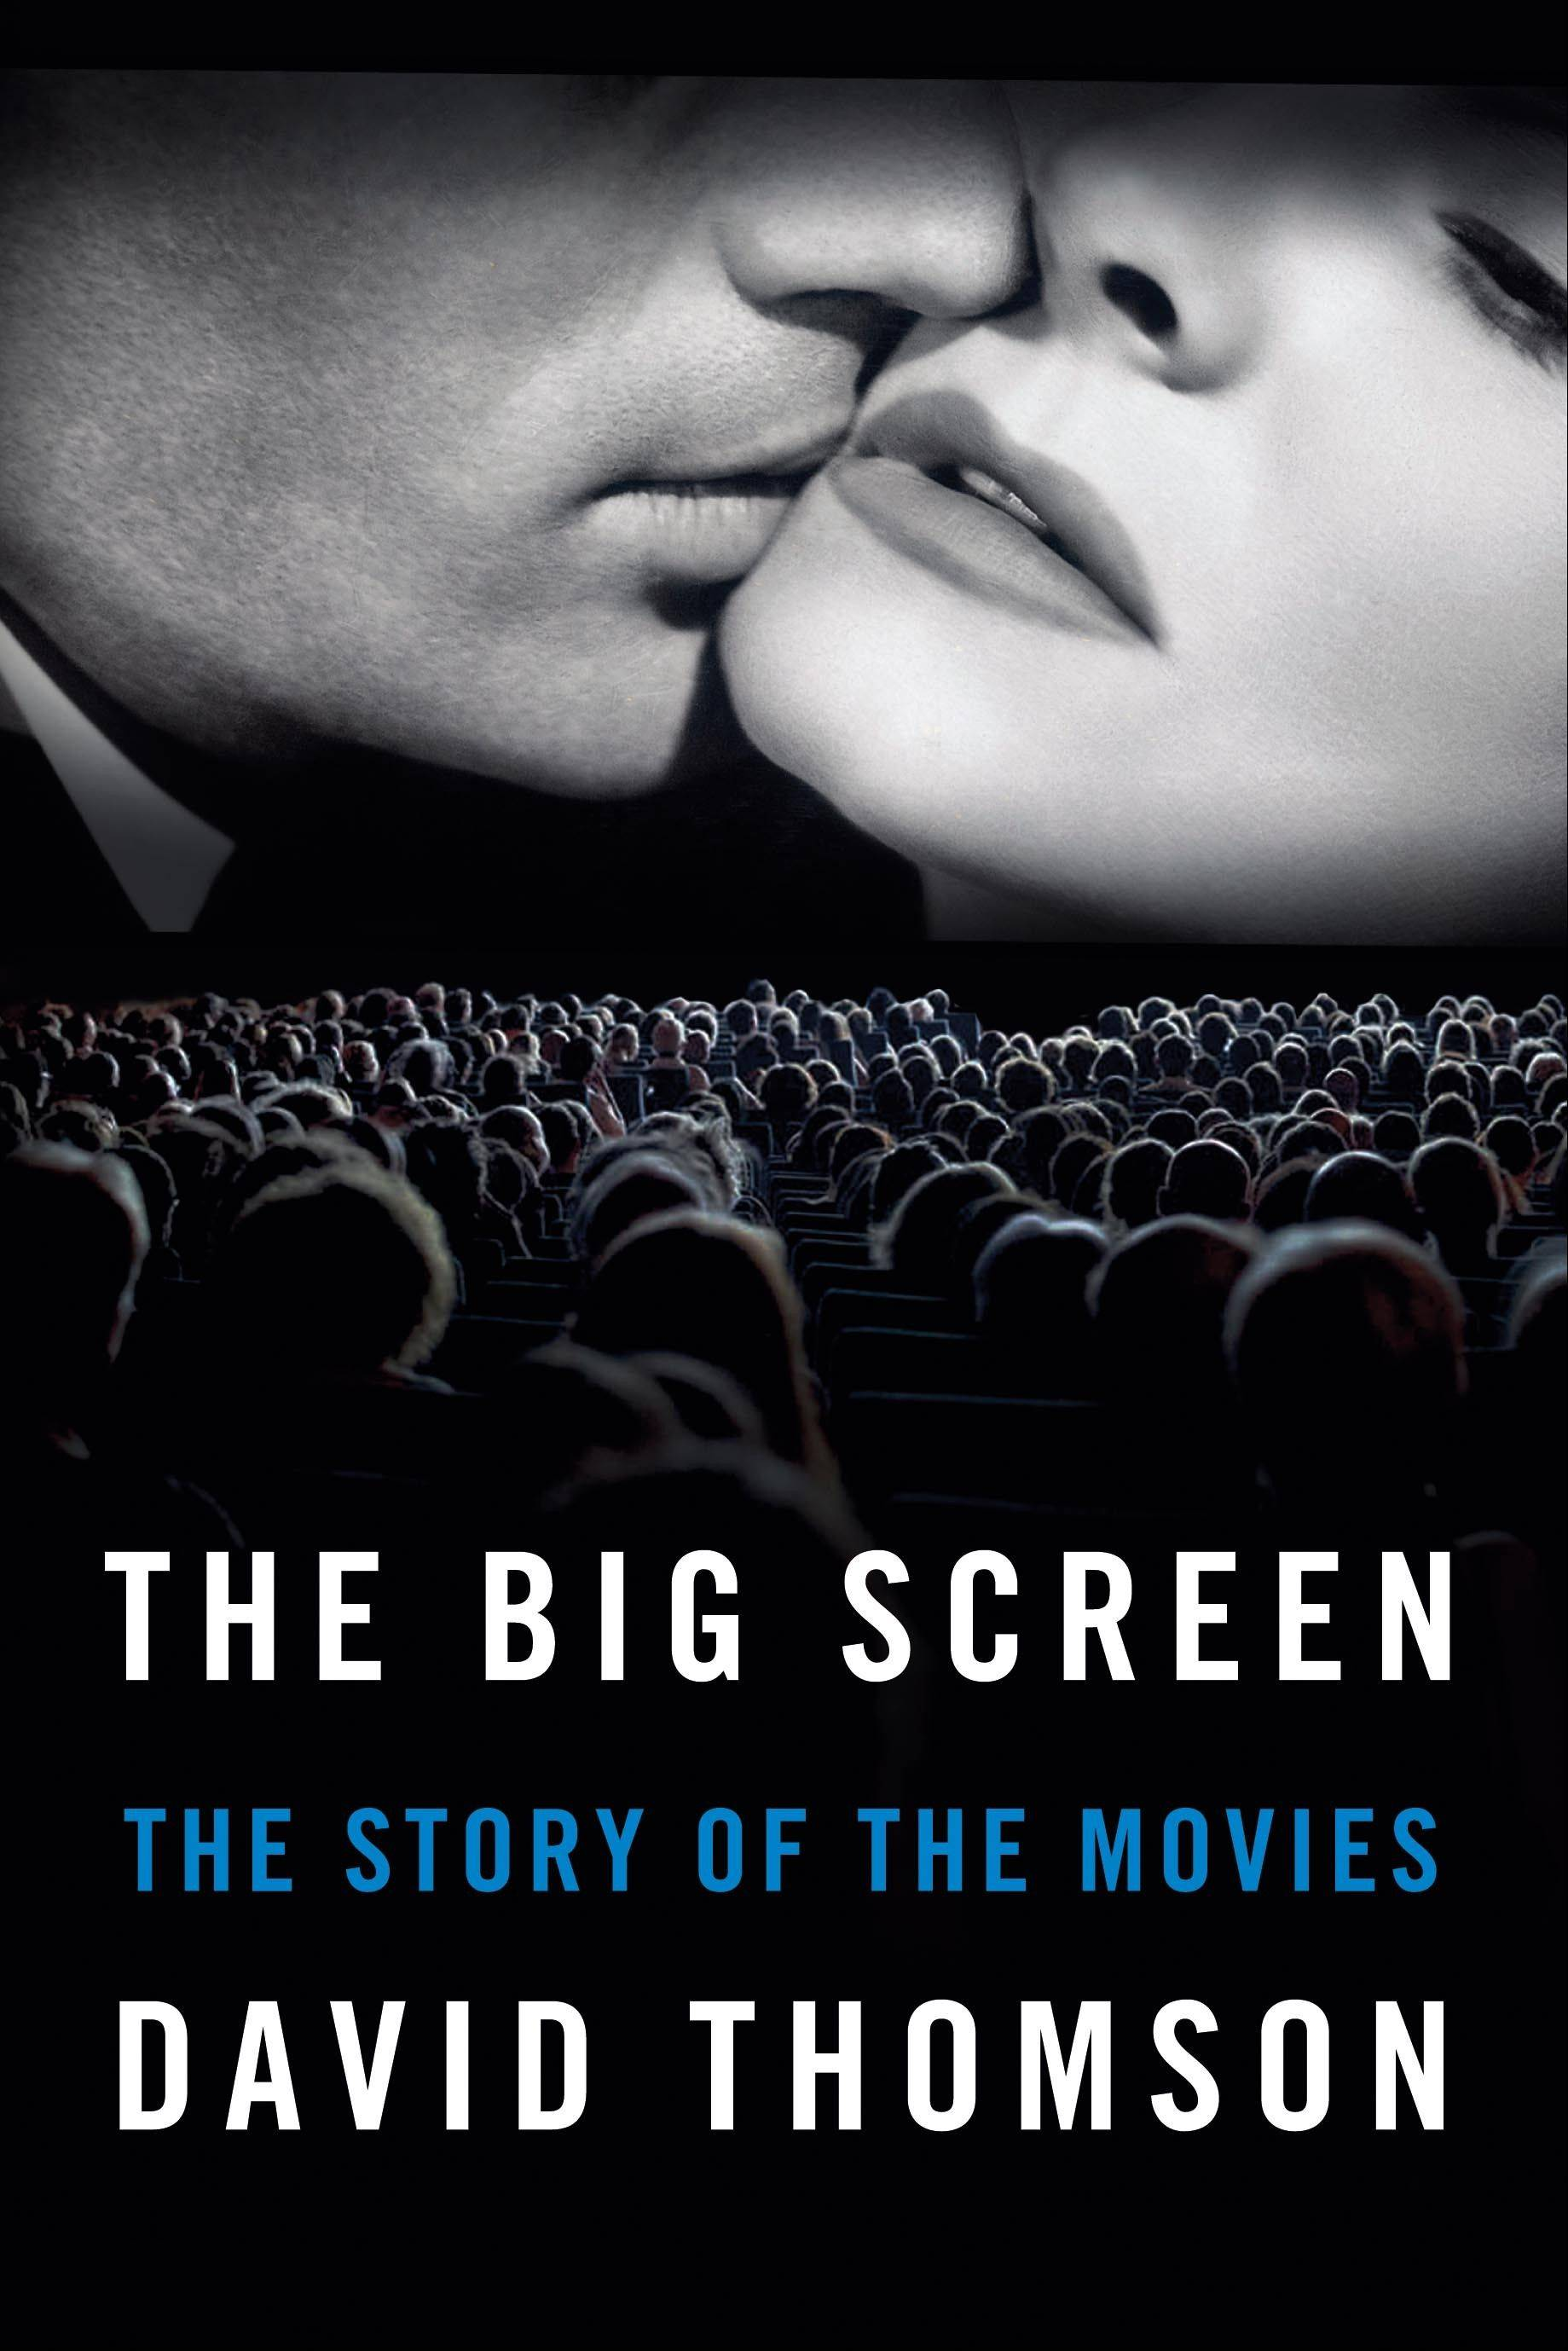 """The Big Screen: The Story of the Movies"" by David Thomson"